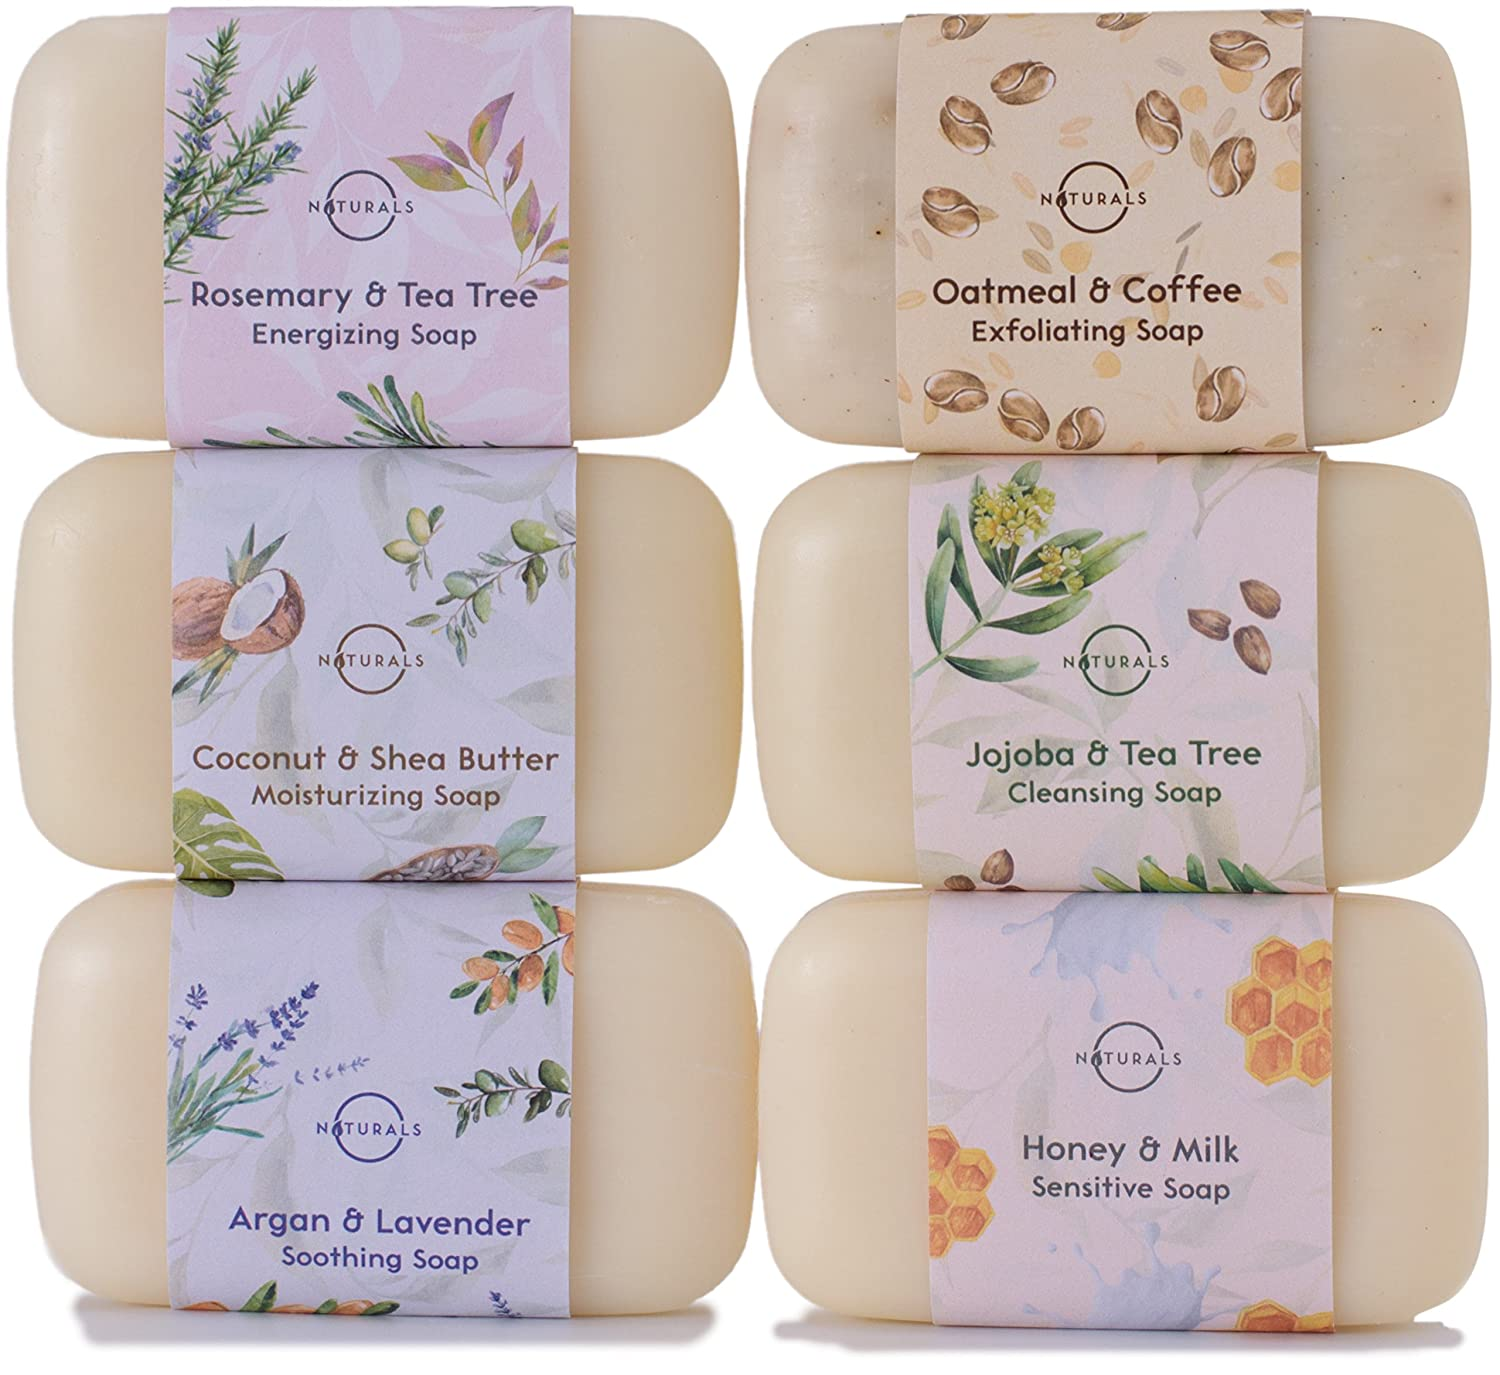 O Naturals Natural Soap Collection